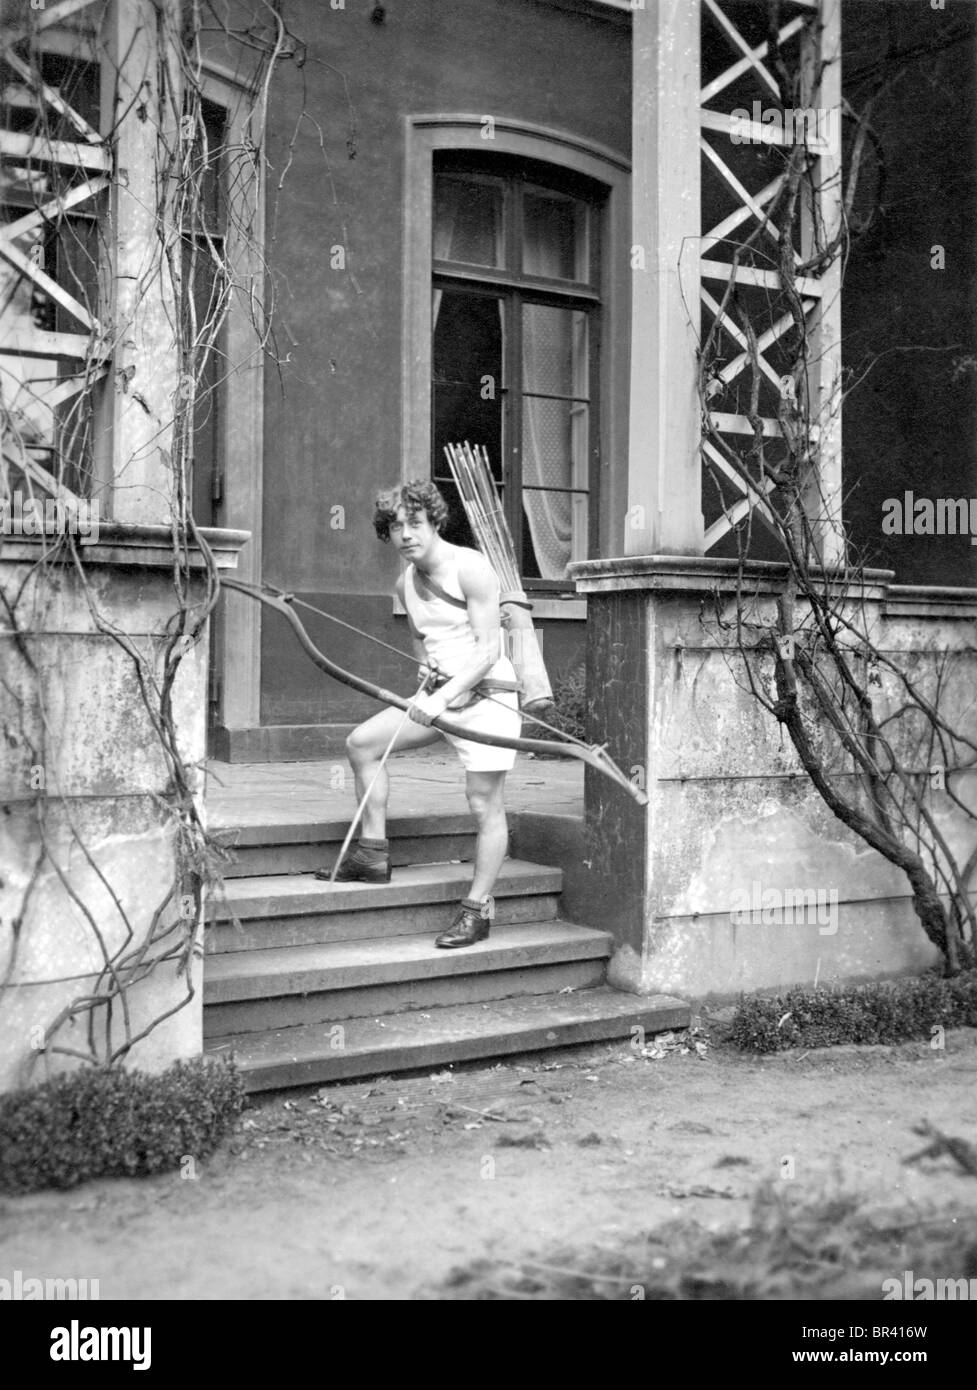 Historical image, boy with a bow and arrow, ca. 1920 - Stock Image